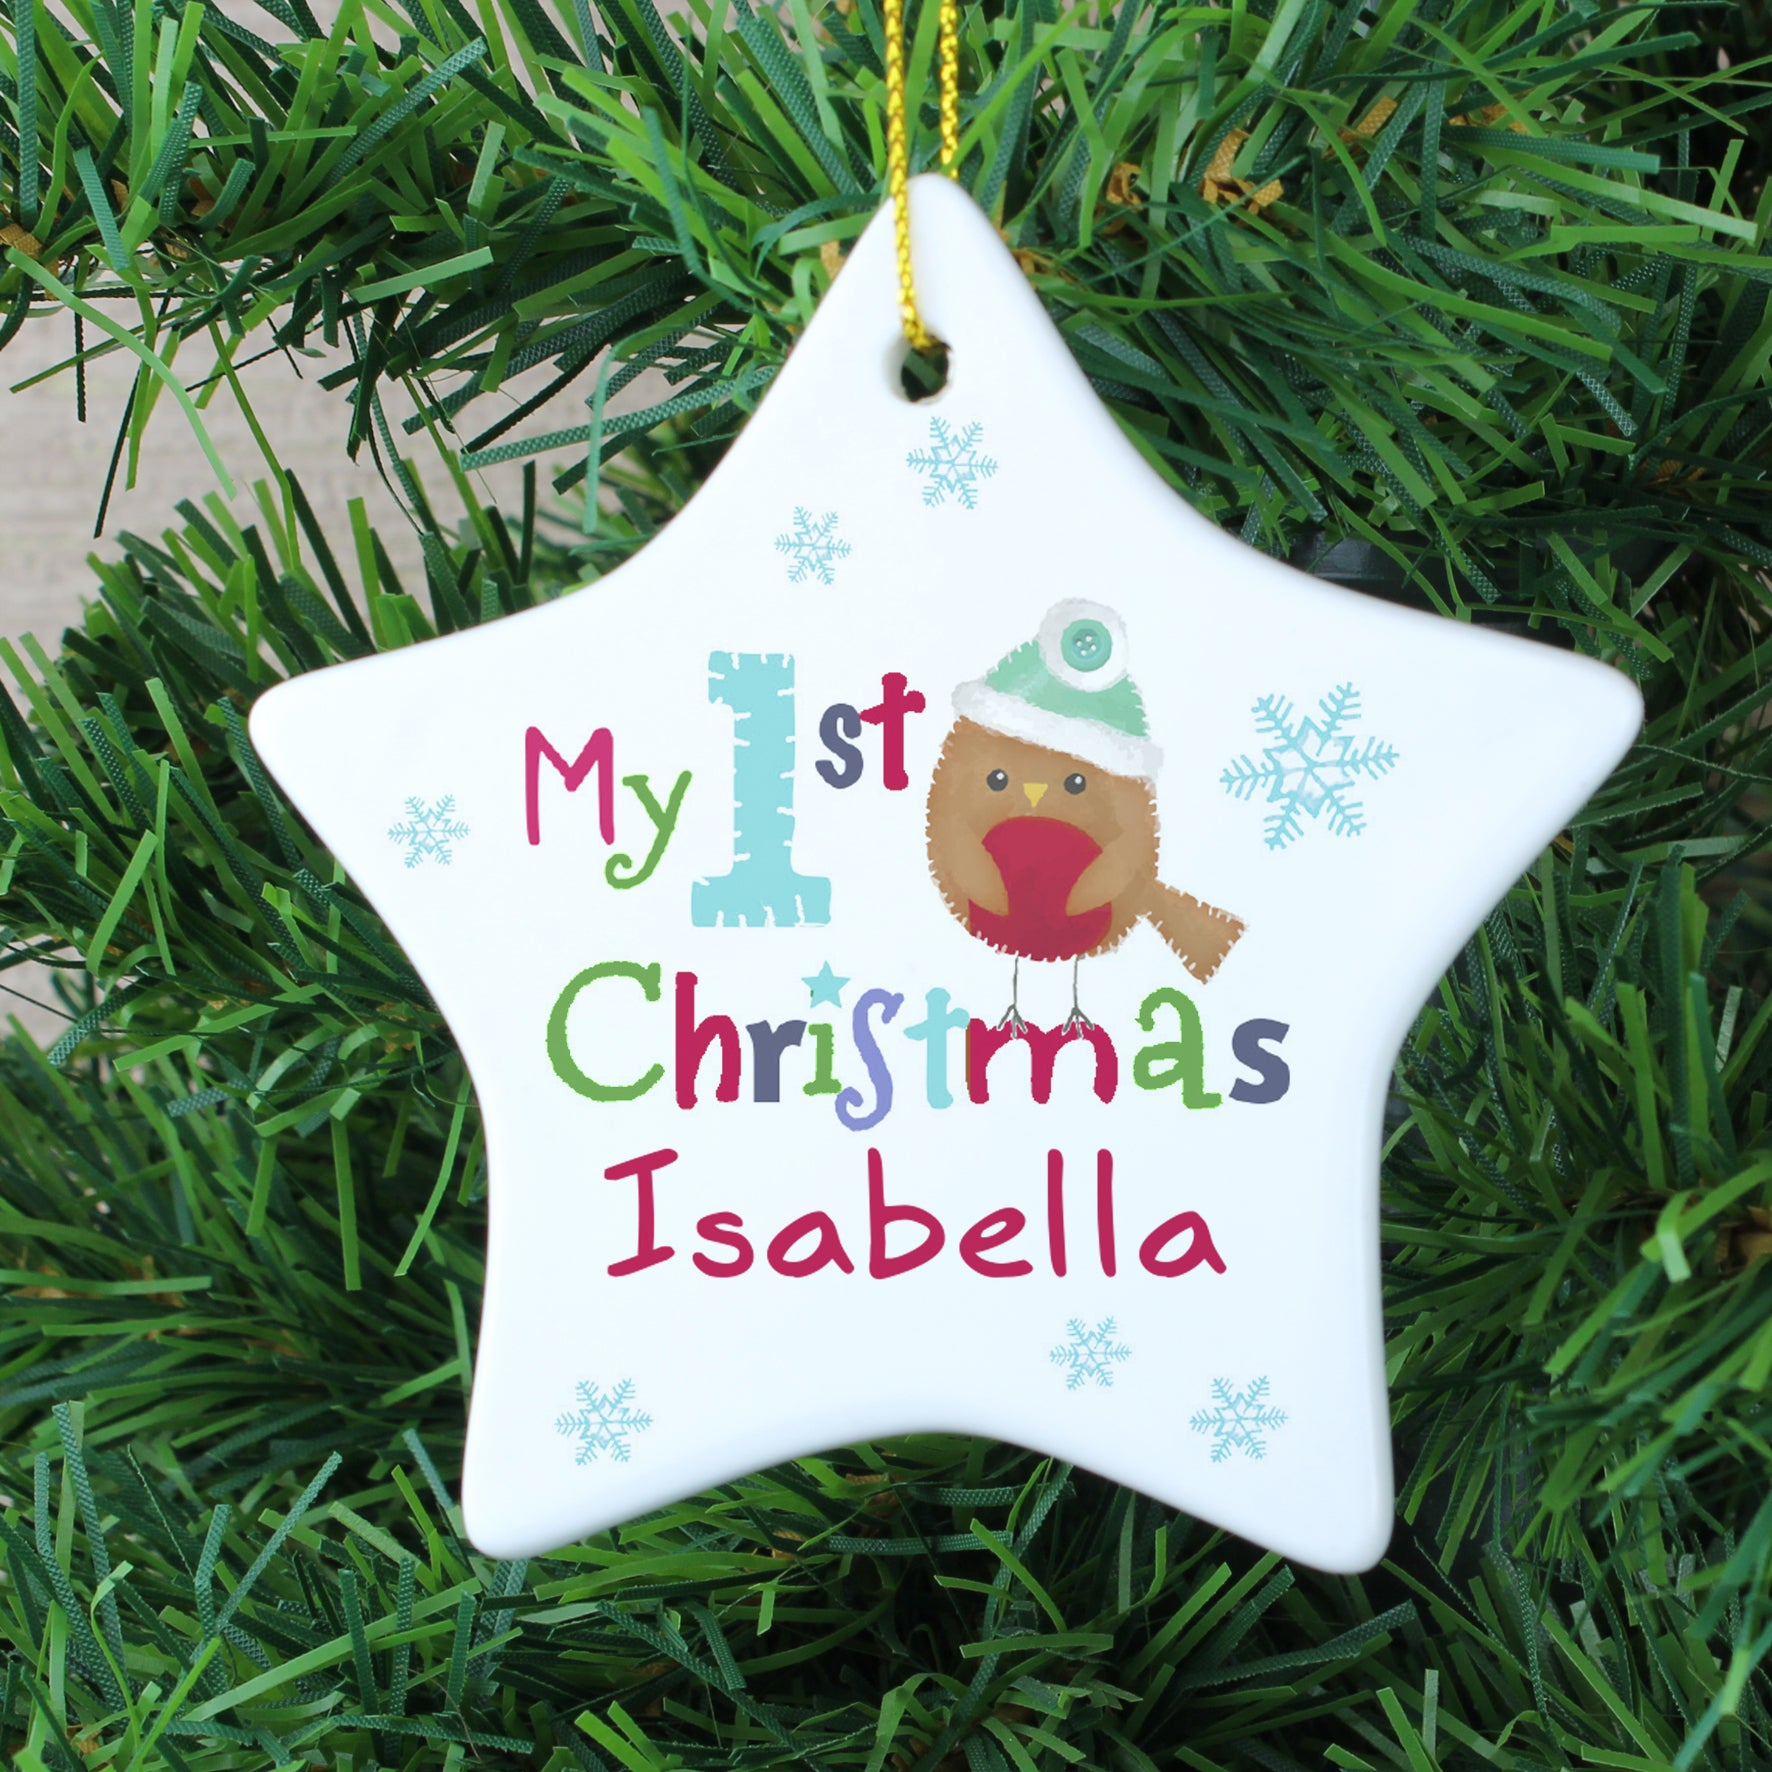 Personalised white ceramic star shaped Christmas decoration to hang on a tree featuring the words 'My 1st Christmas' on the front alongside an image of a hand-drawn robin. The front of the decoration can be personalised with a name of your choice of up to 12 characters.